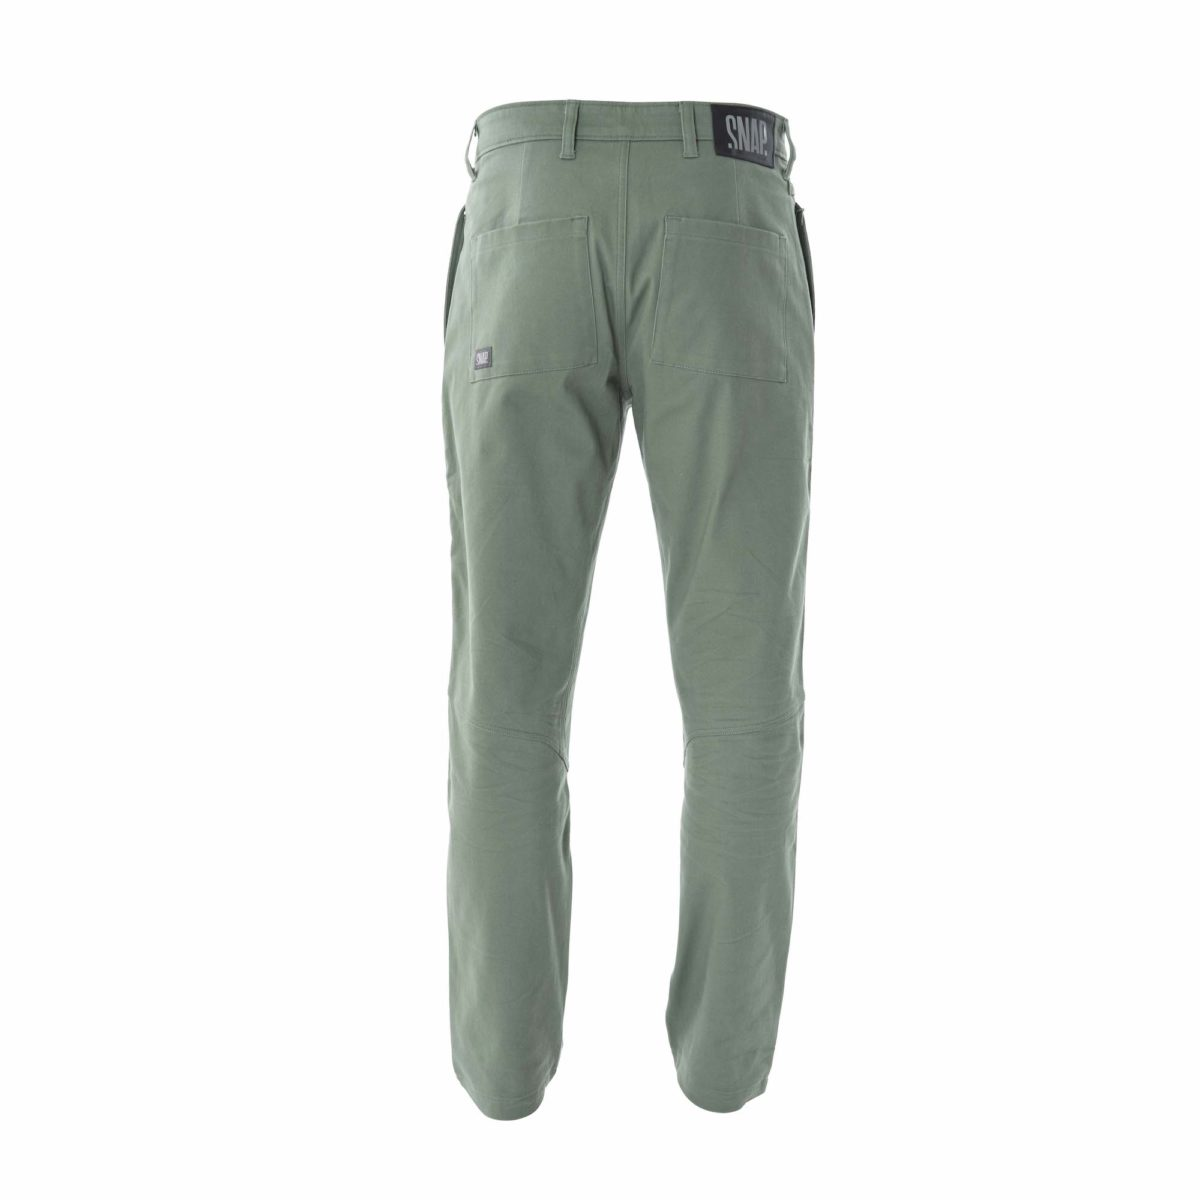 large cut pants for man